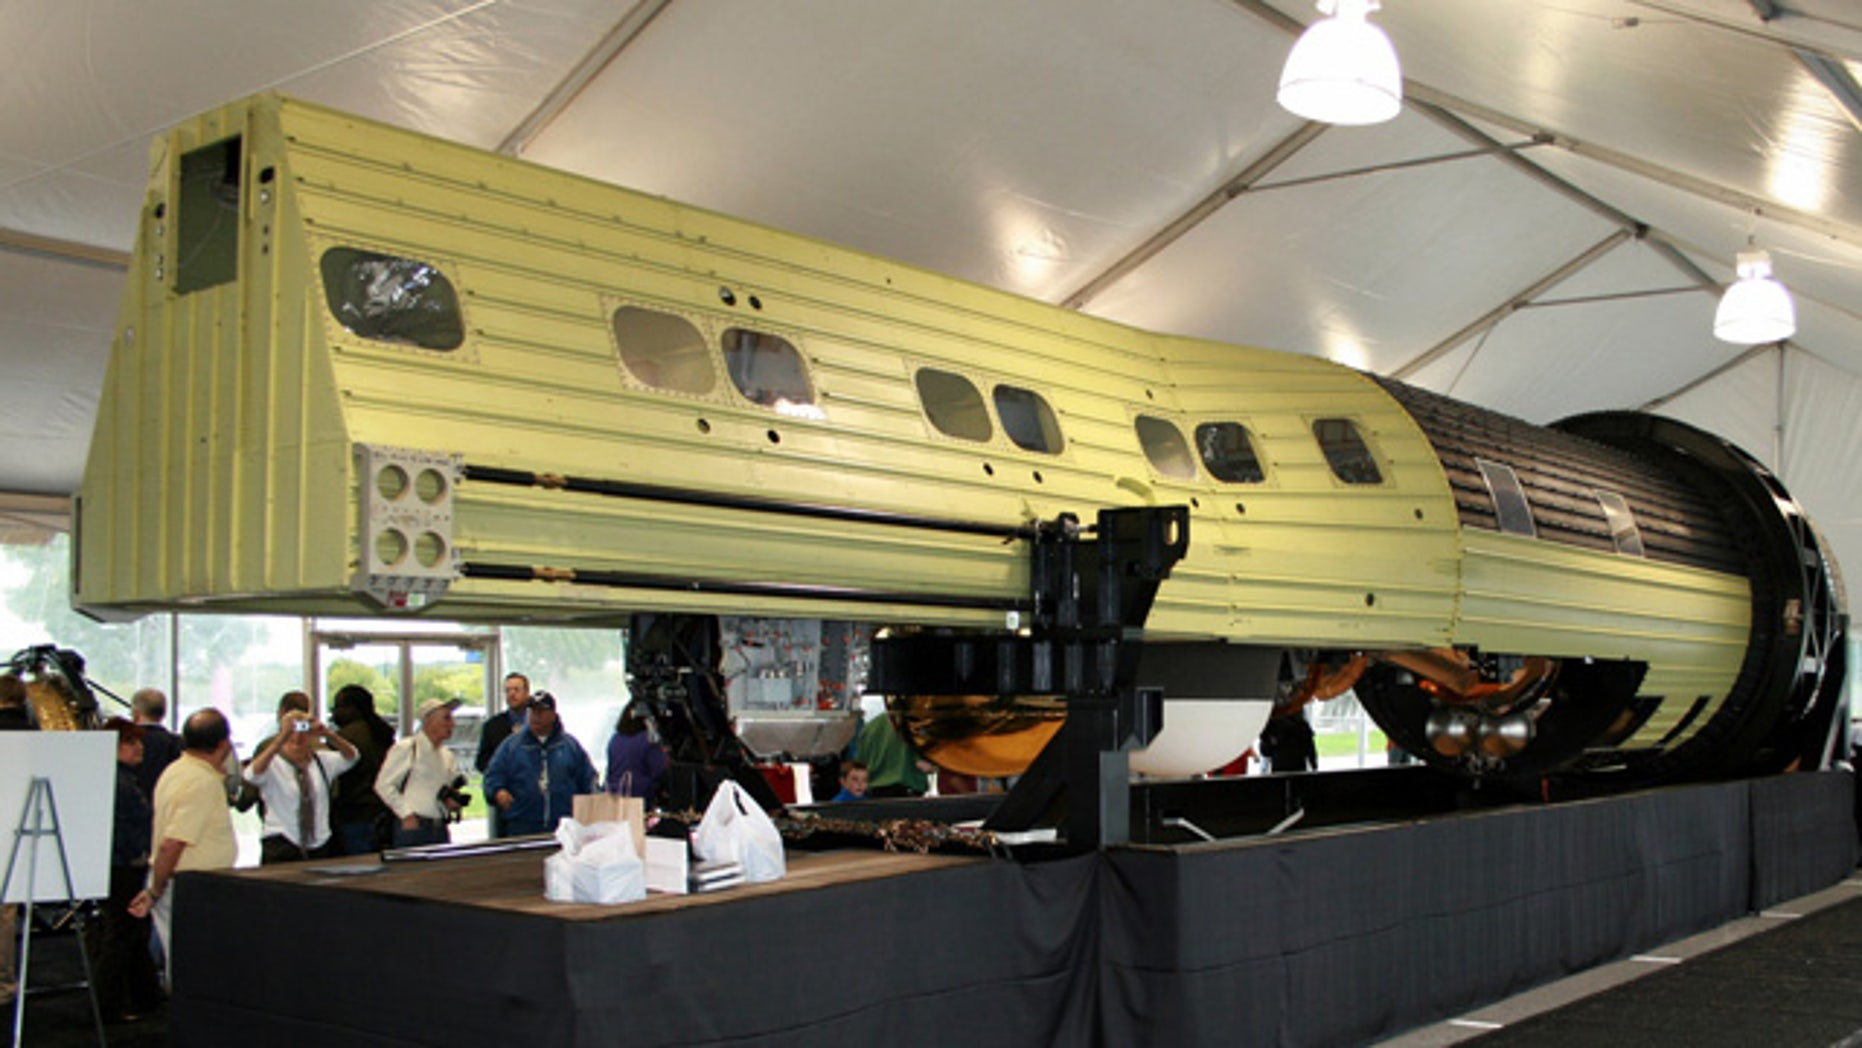 The massive KH-9 Hexagon spy satellite on display at the Smithsonian National Air & Space Museum's Udvar-Hazy Center, after being declassified on Sept. 17, 2011. Longer than a school bus at 60 feet in length and weighing 30,000 pounds at launch, 20 KH-9 Hexagons were launched by the National Reconnaissance Office between 1971 and 1986.